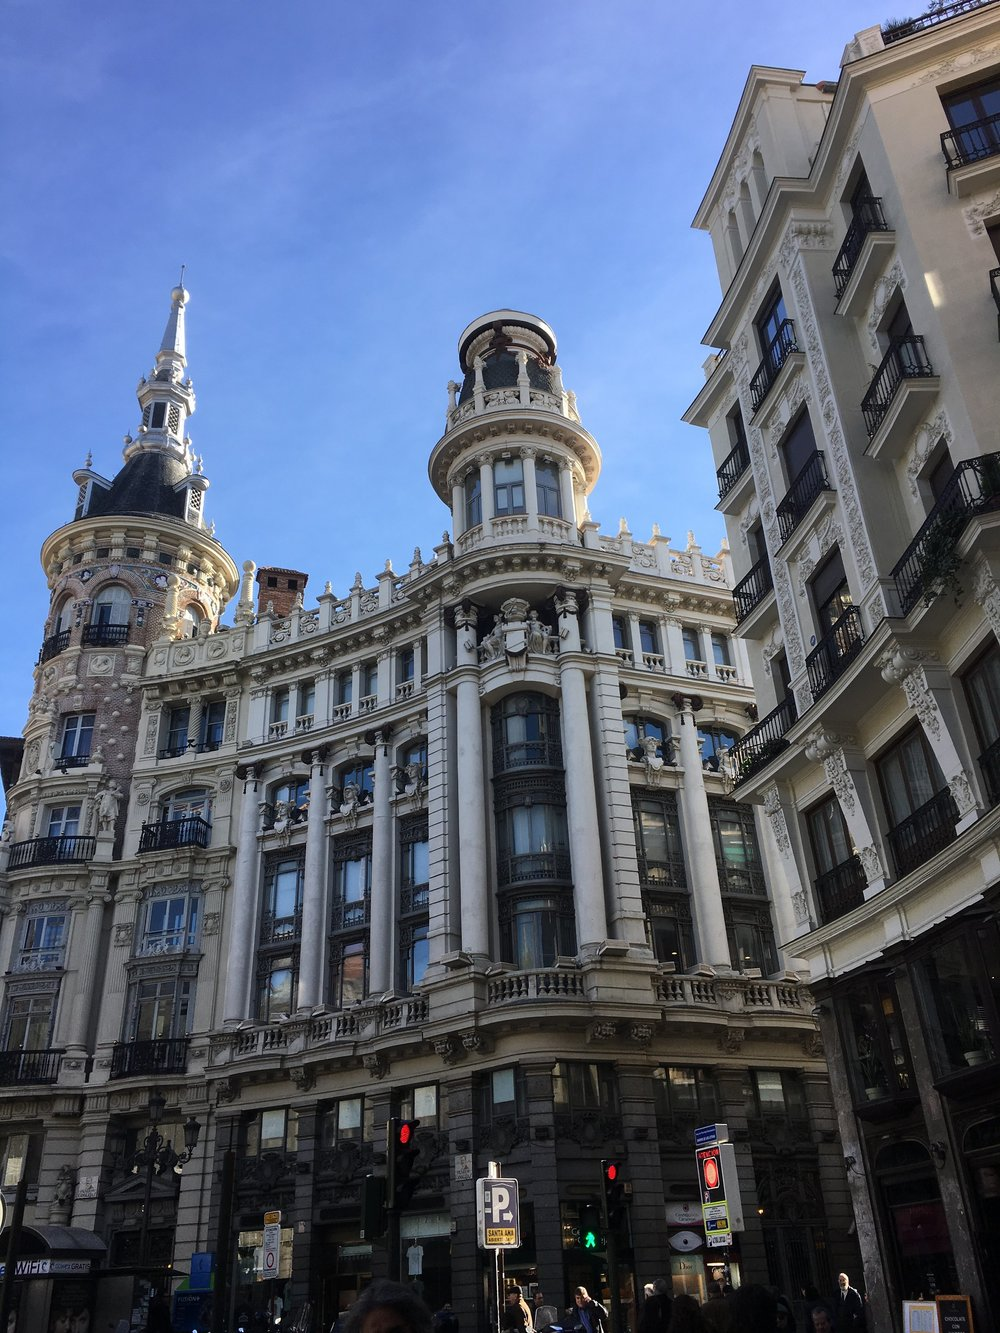 Madrid has some of the most beautiful architecture I have ever seen!